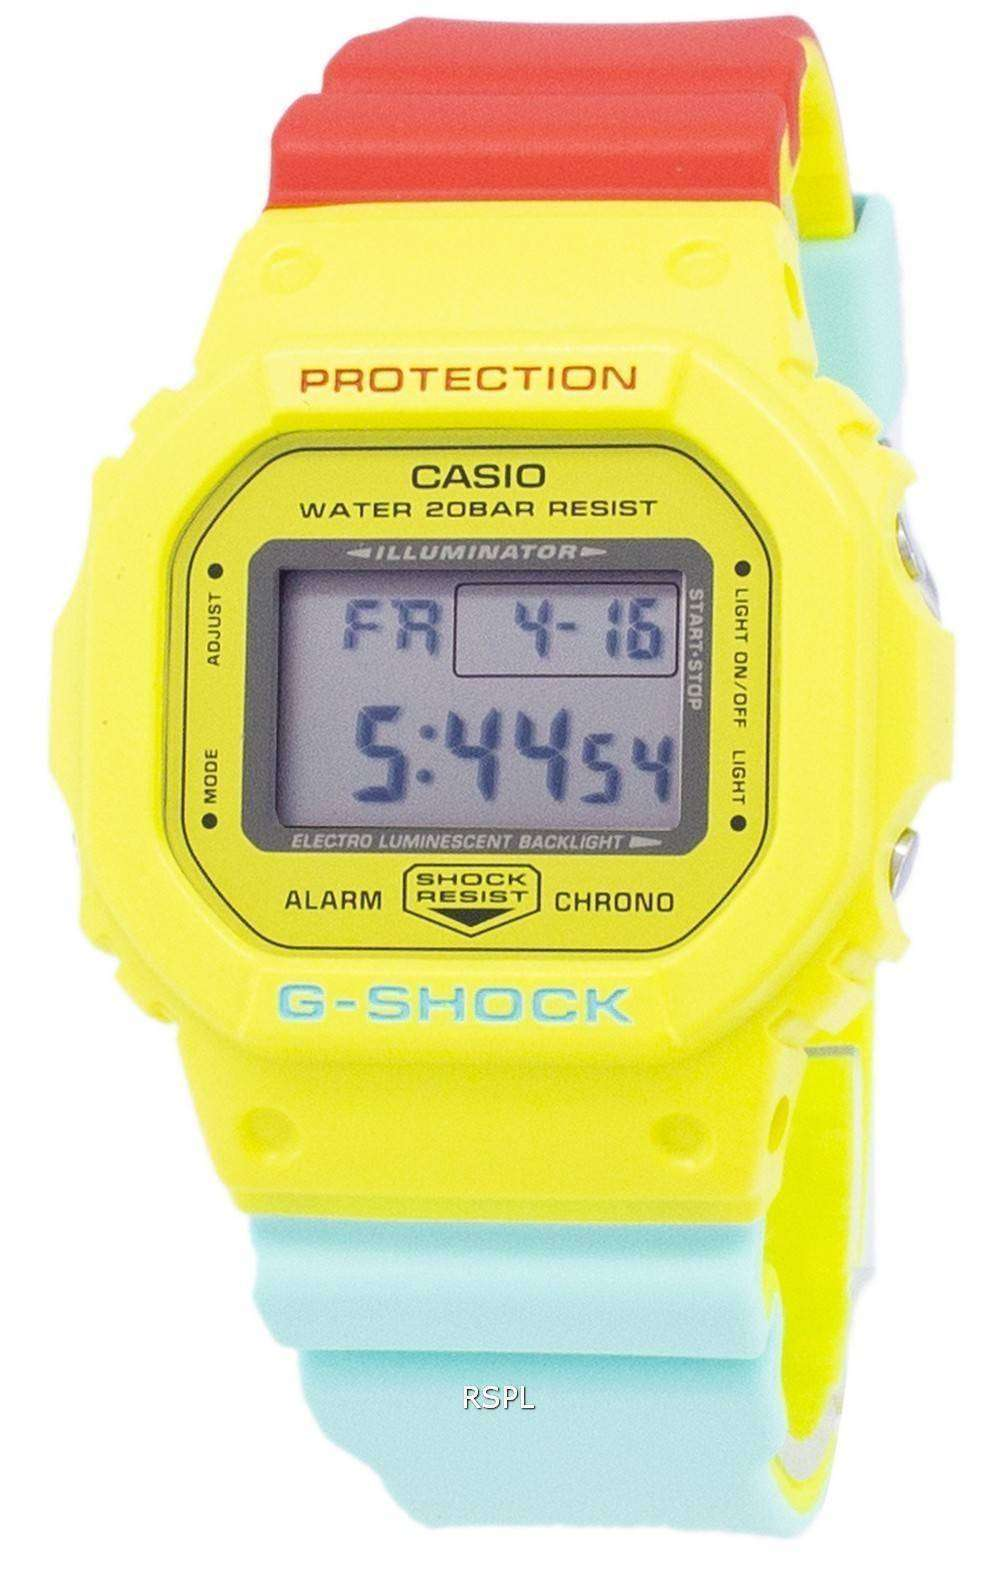 Casio G-Shock Special Color Models 200M DW-5600CMA-9 DW5600CMA-9 Men's Watch